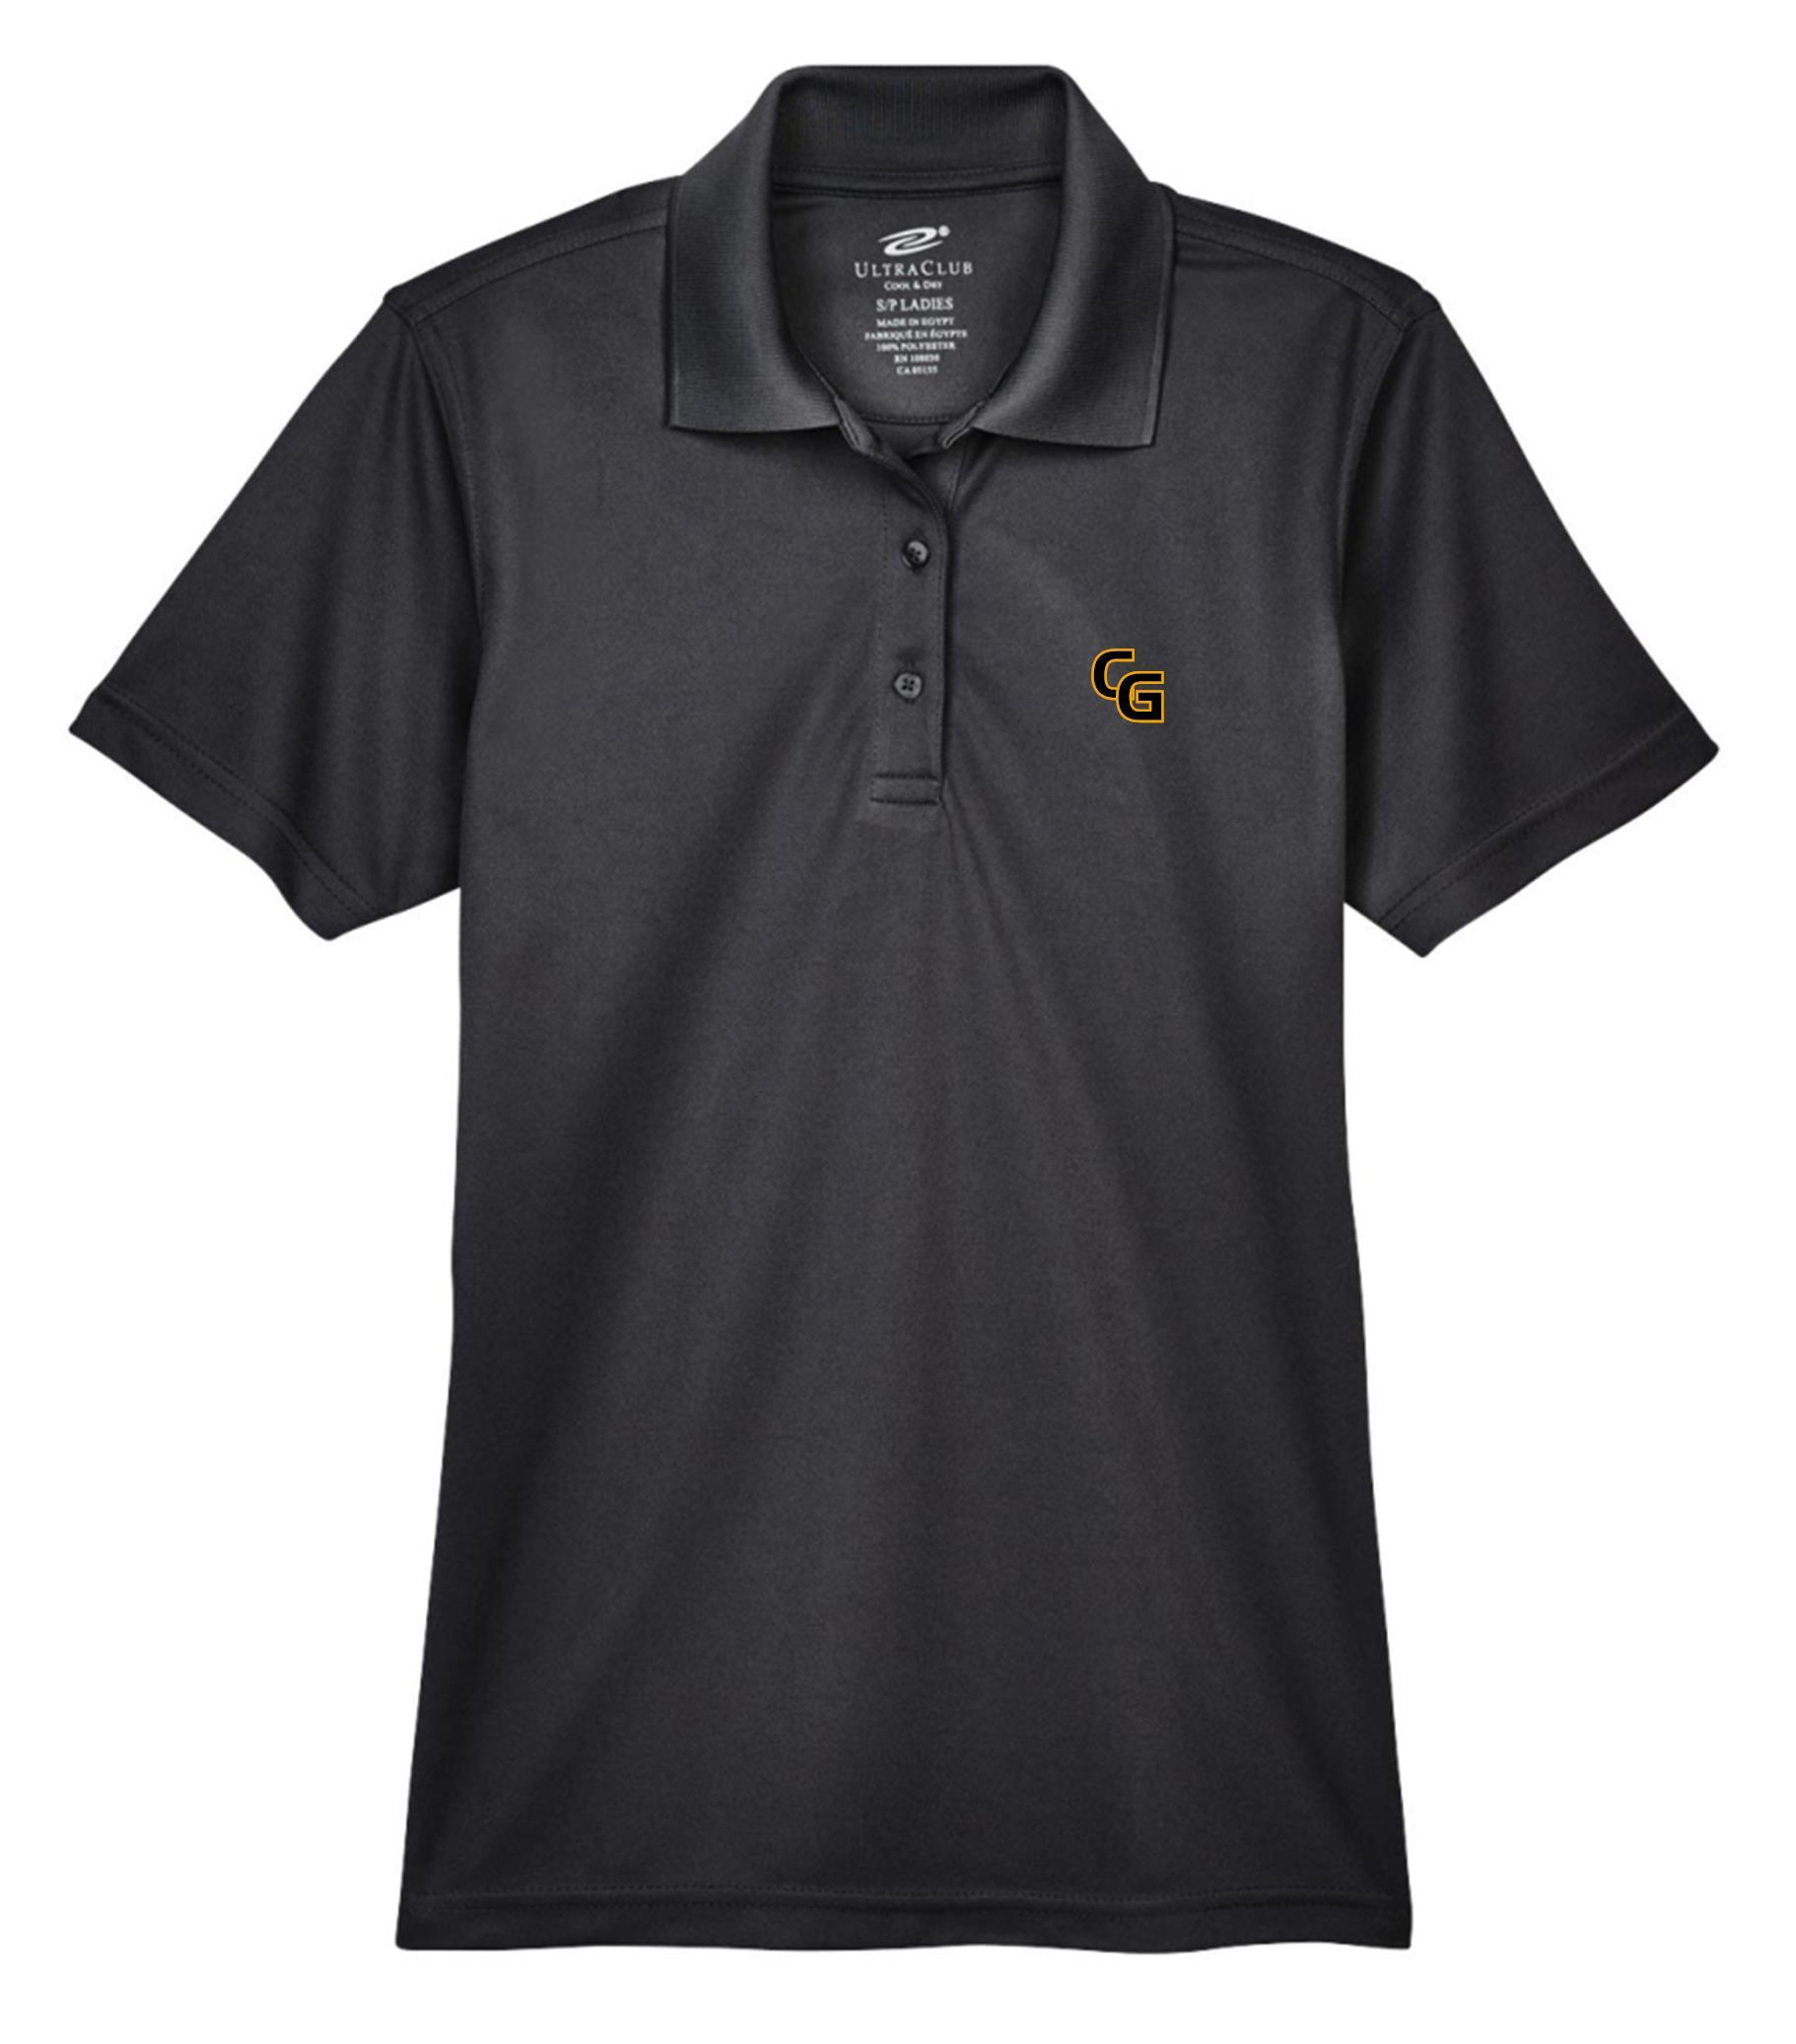 Ultra Club CG Cool and Dry Mesh Pique Polo